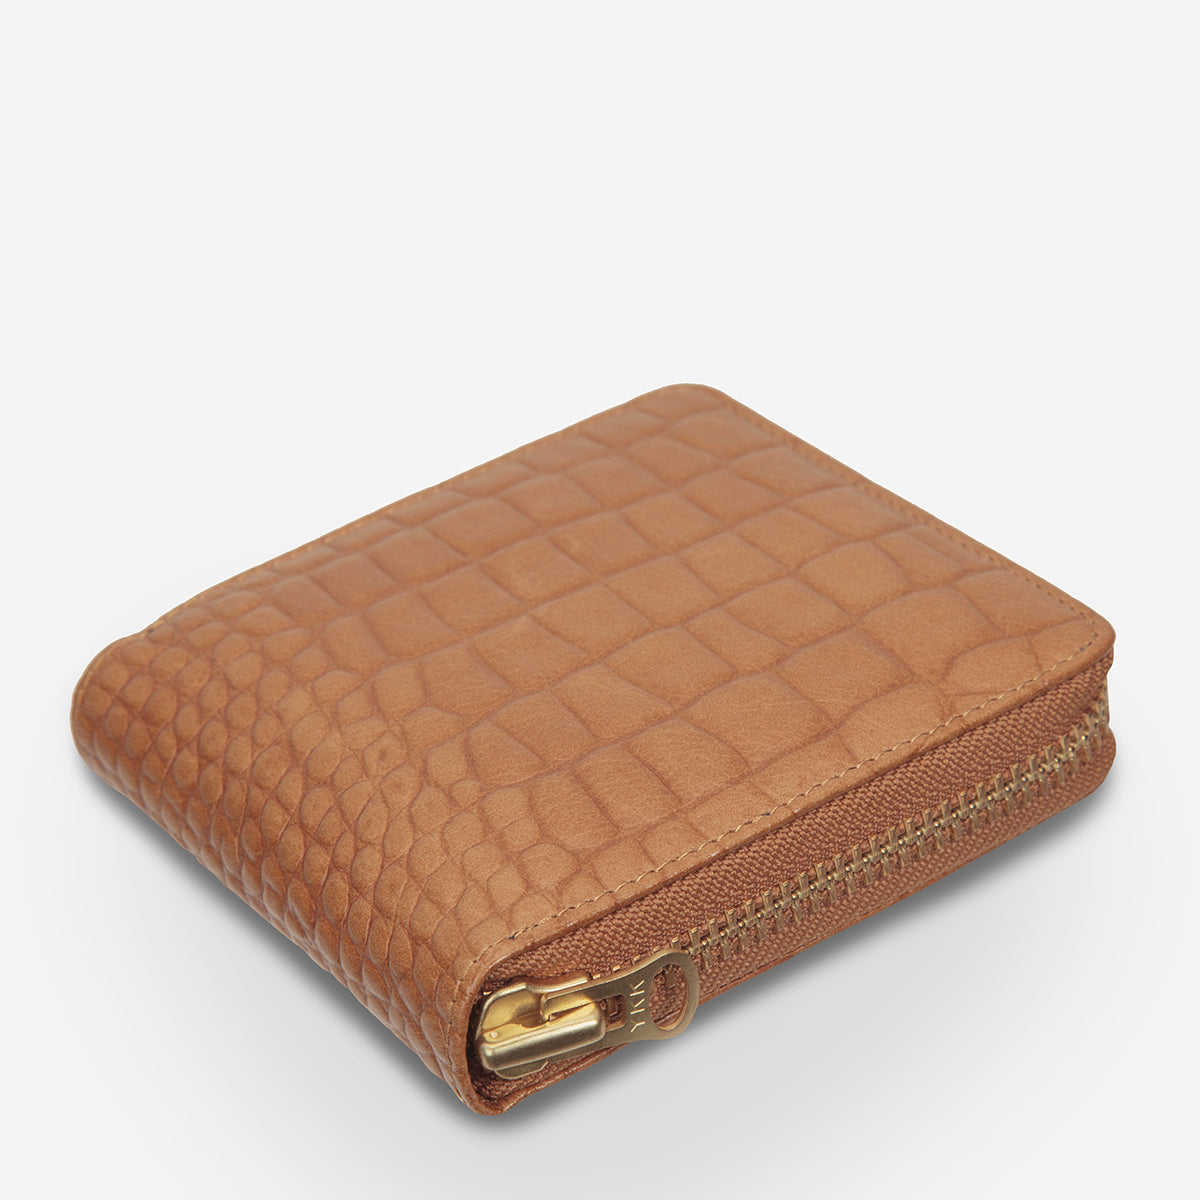 Status Anxiety Empire Leather Wallet - Tan Croc